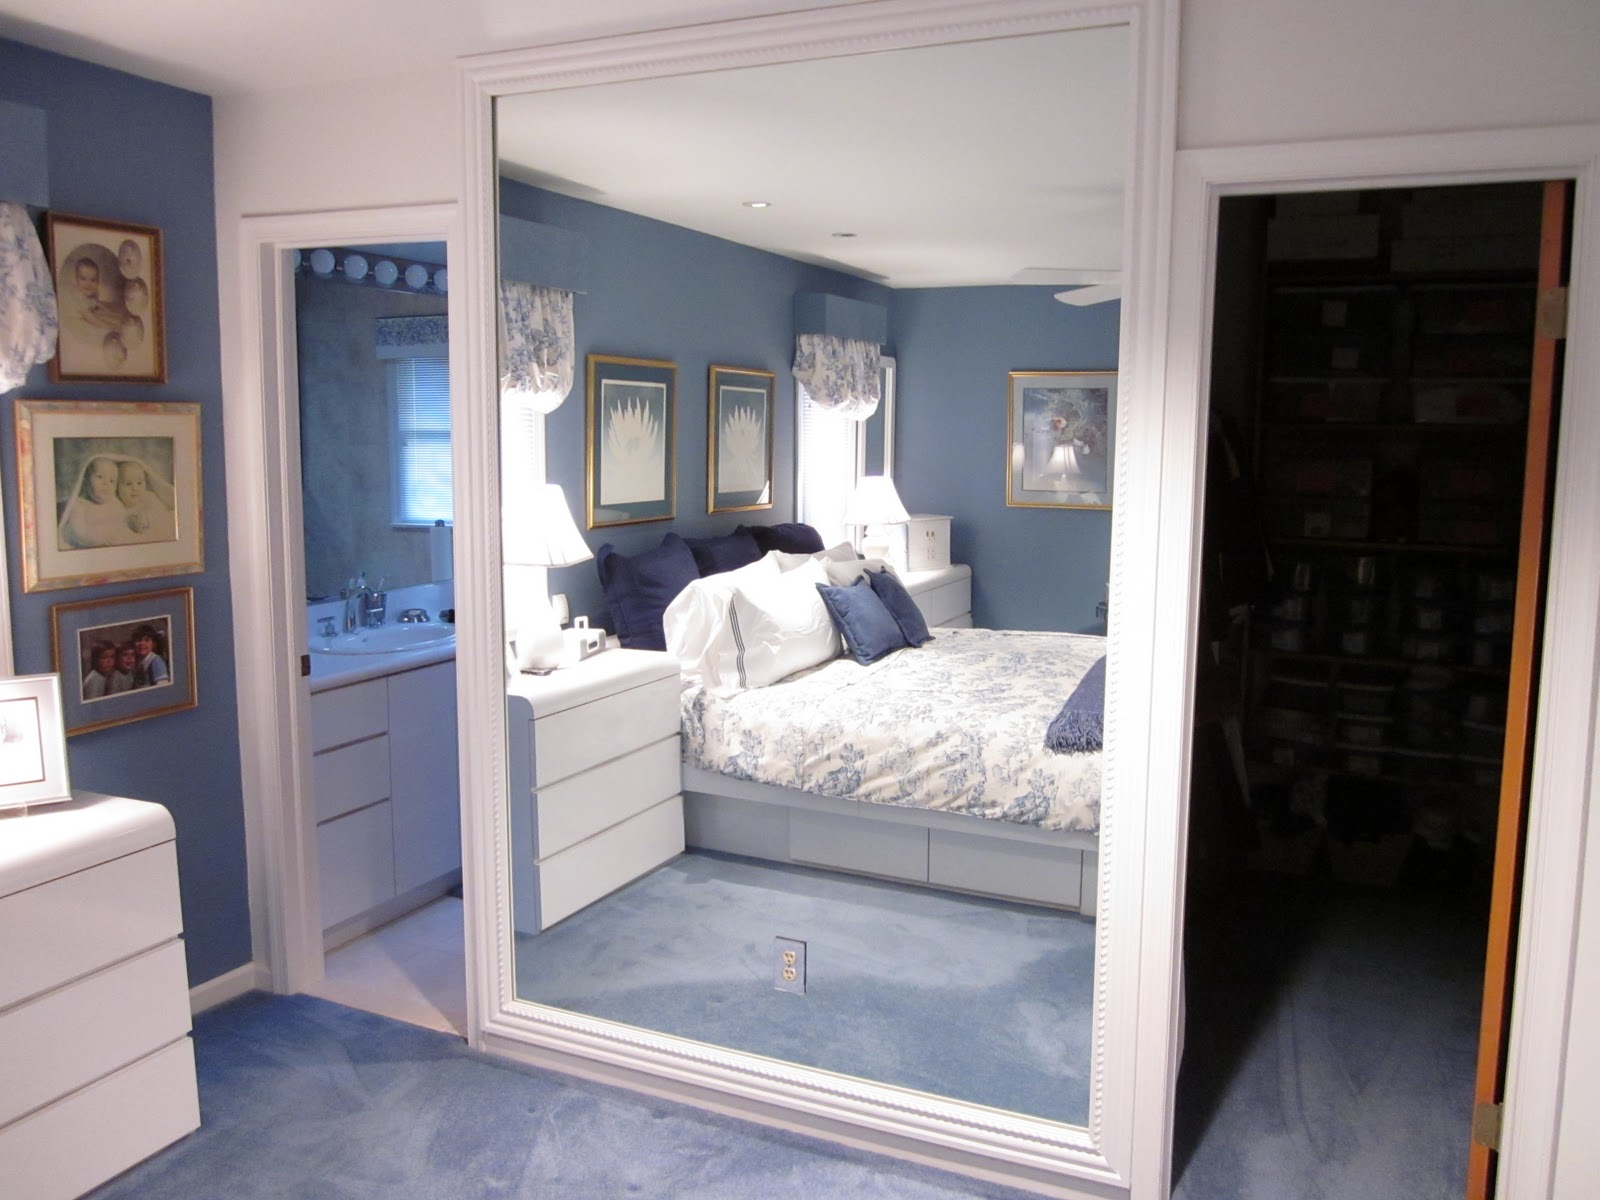 Diy by design framing a large mirror Large mirror on wall